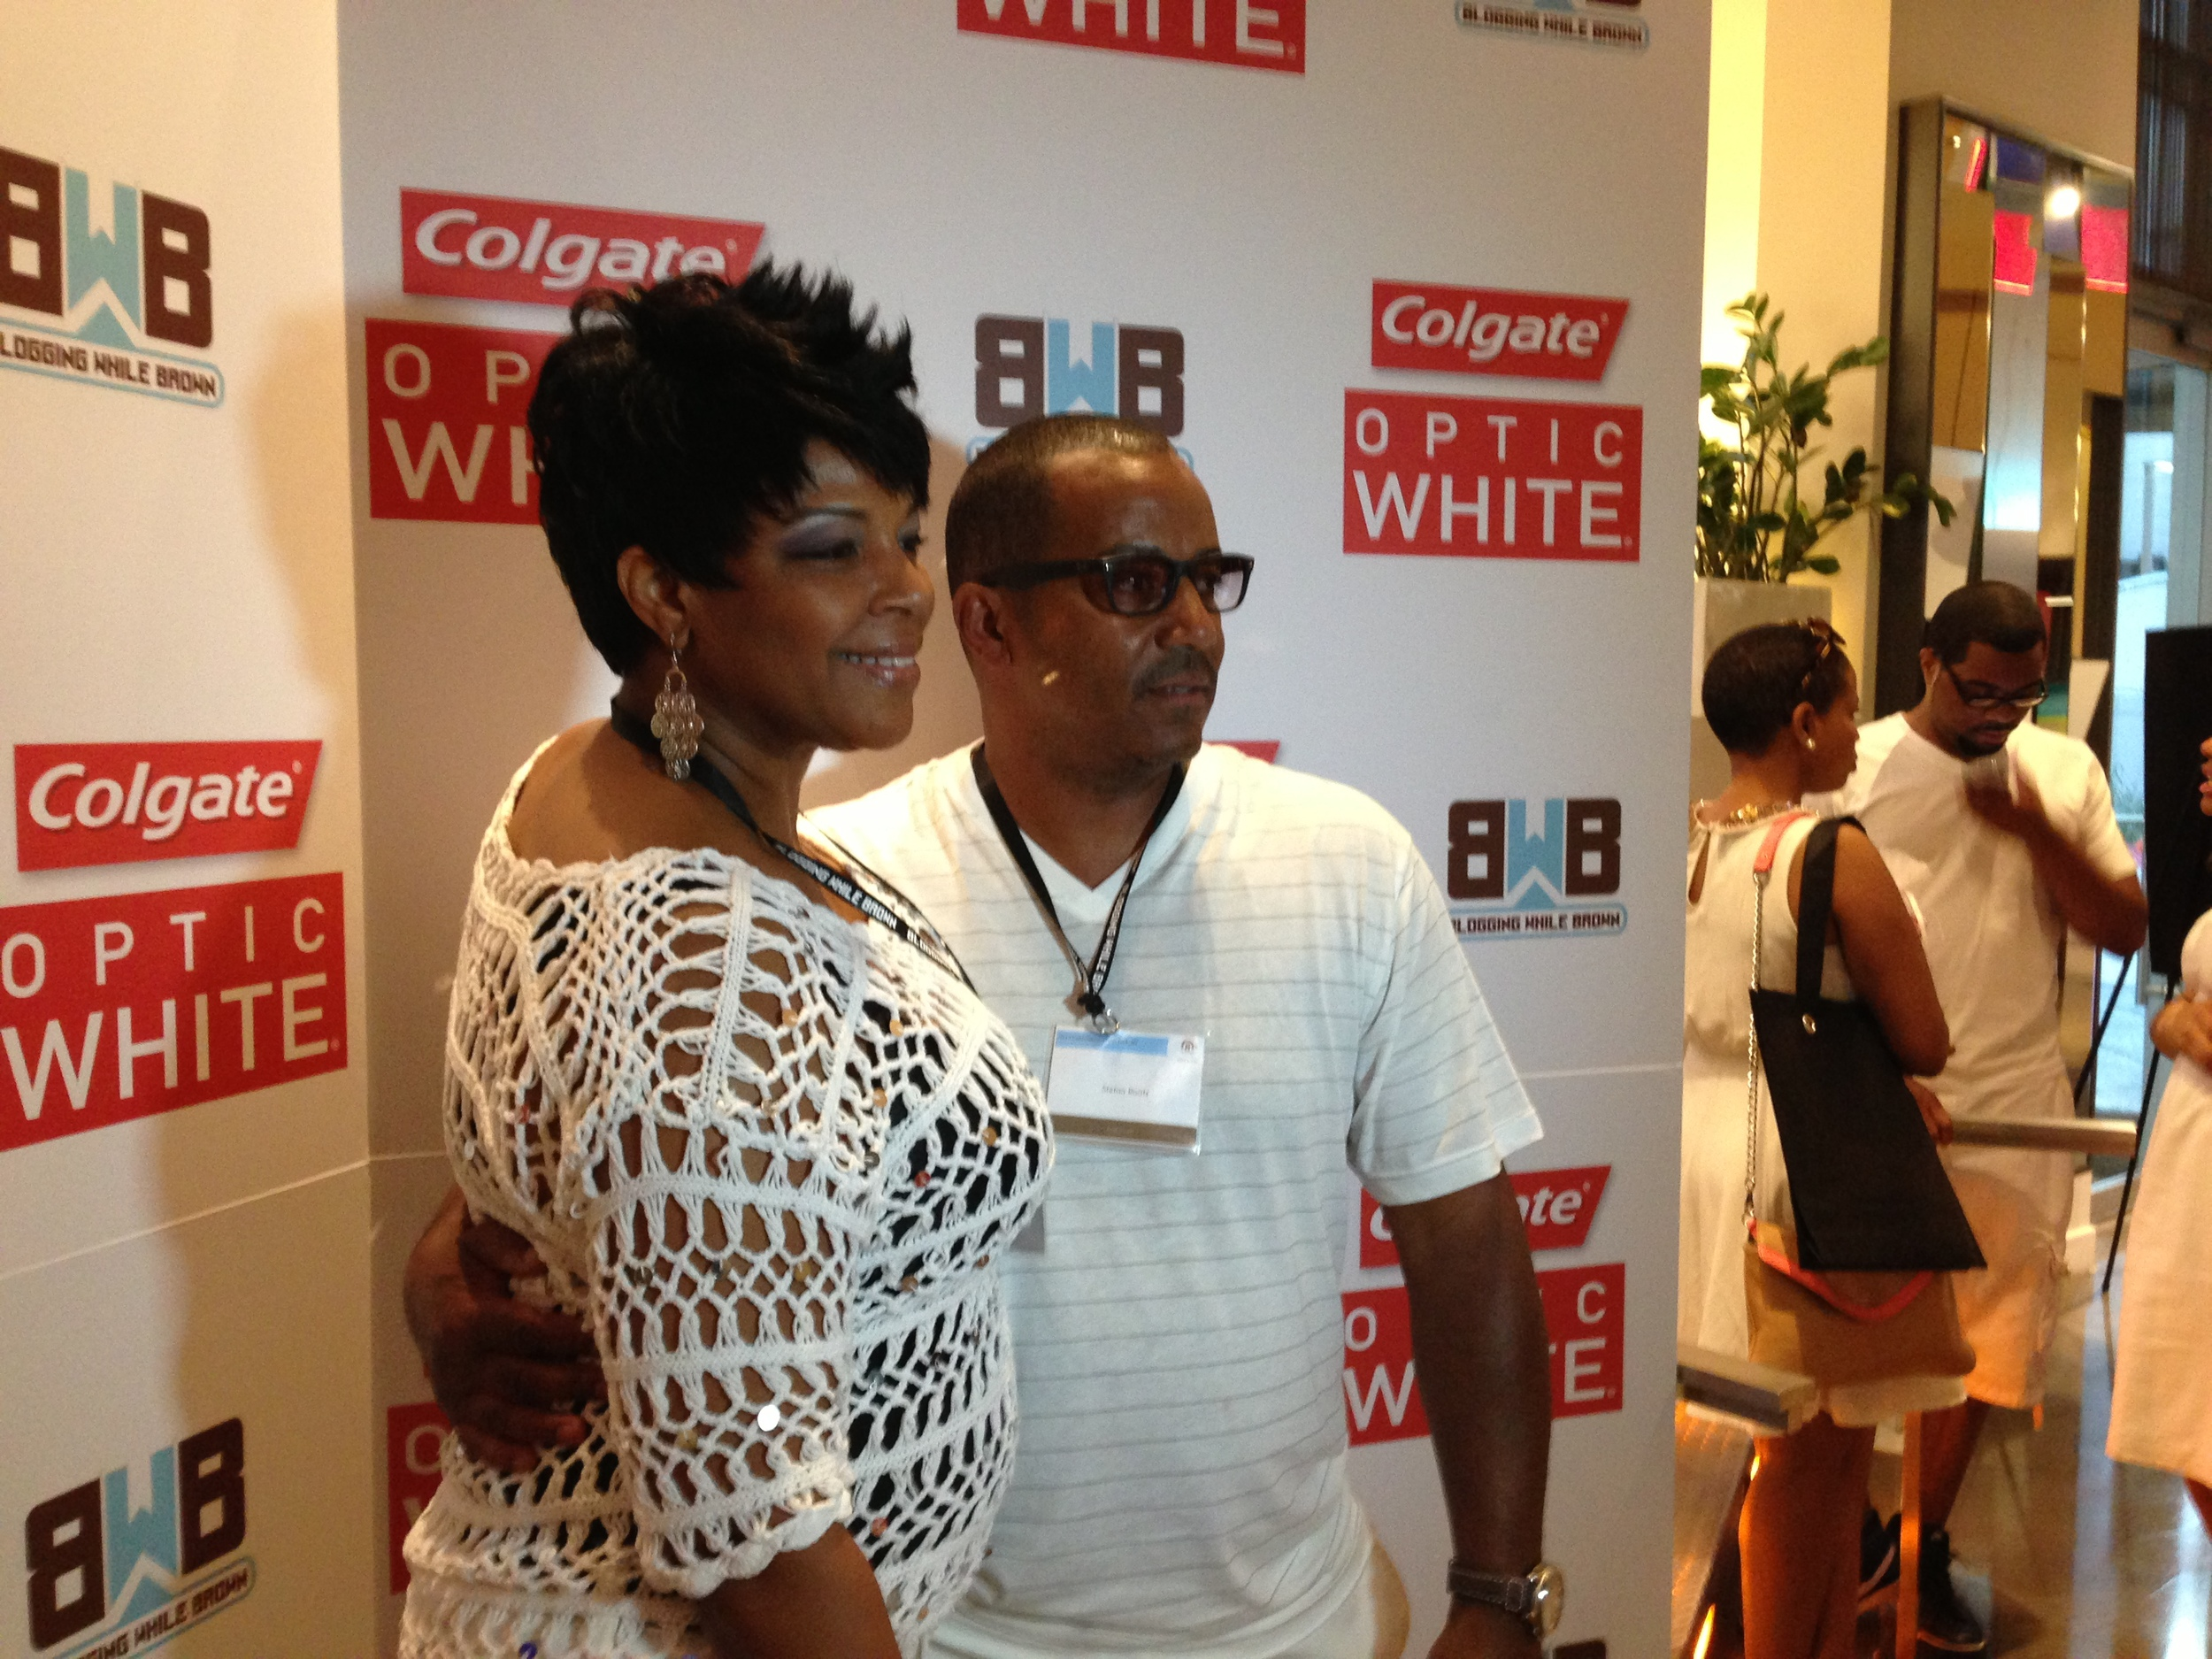 Colgate-Palmolive Opening Party 2014